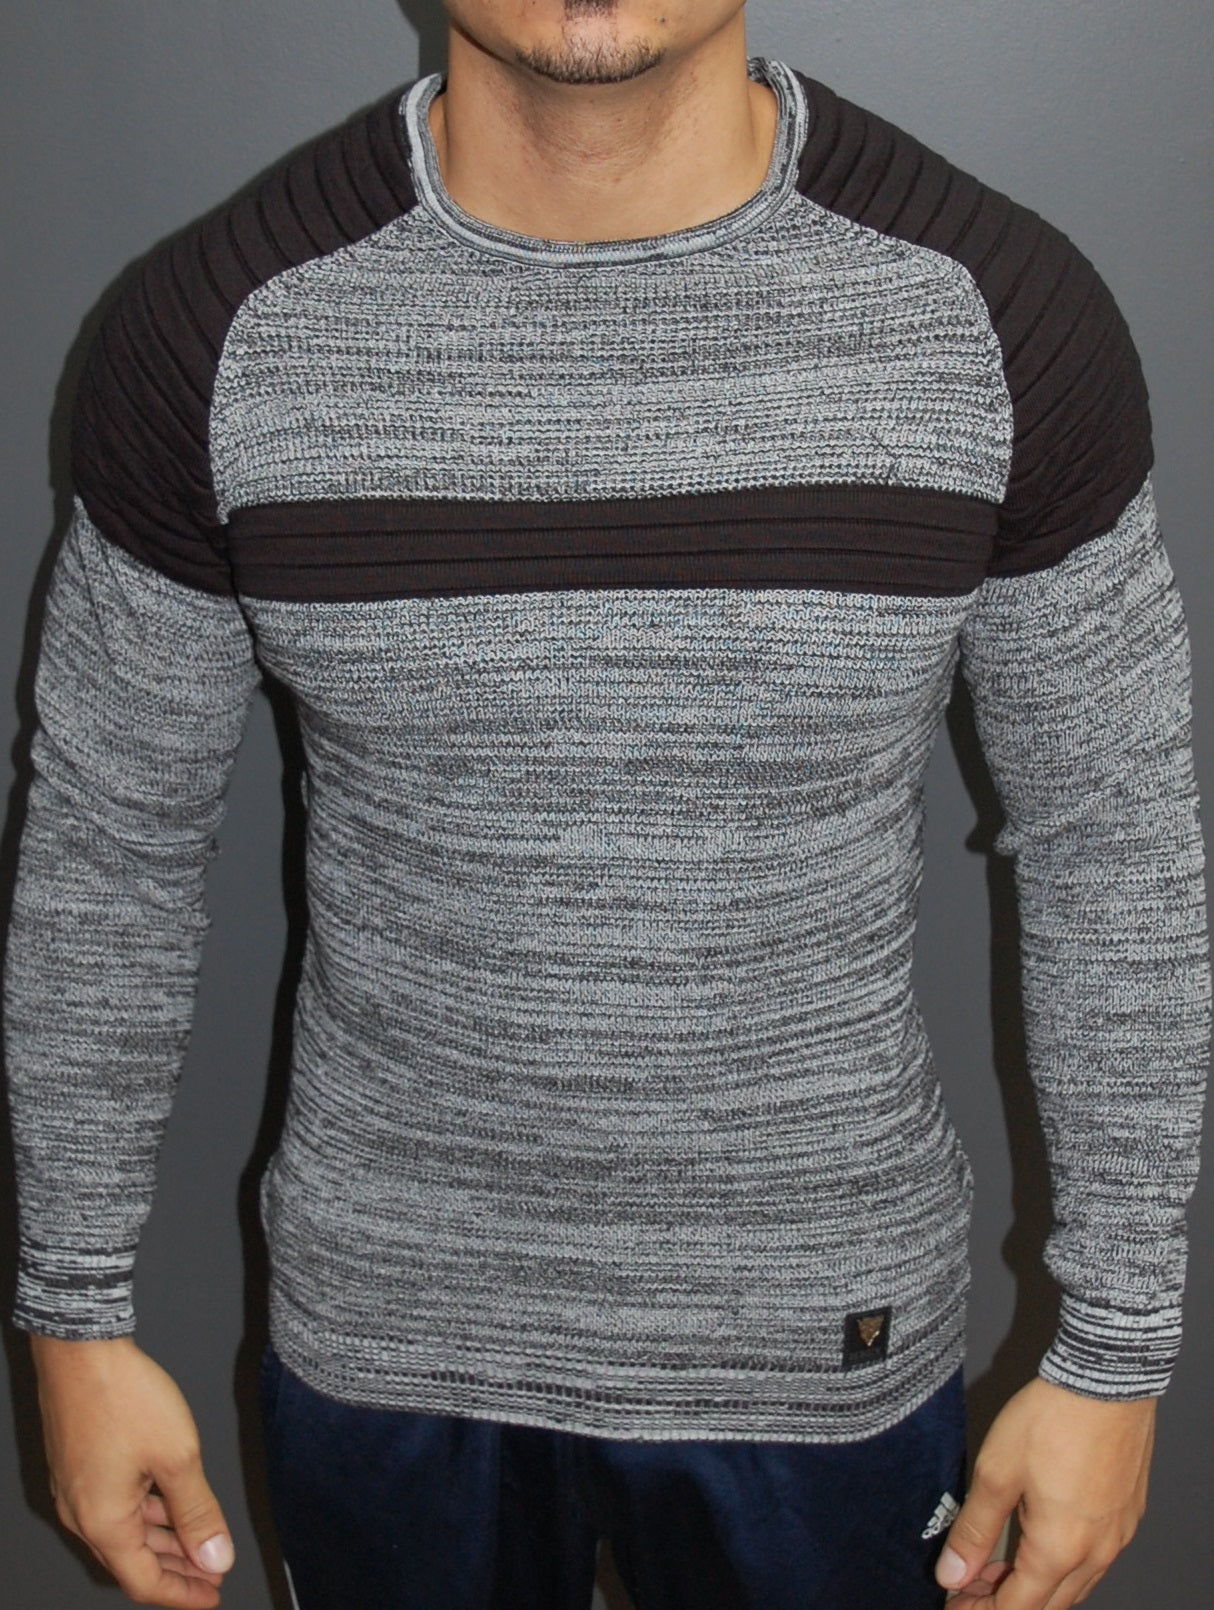 R&R Men Stylish 2 Tone Ribbed Cage Crew Neck Sweater -  Gray / Black